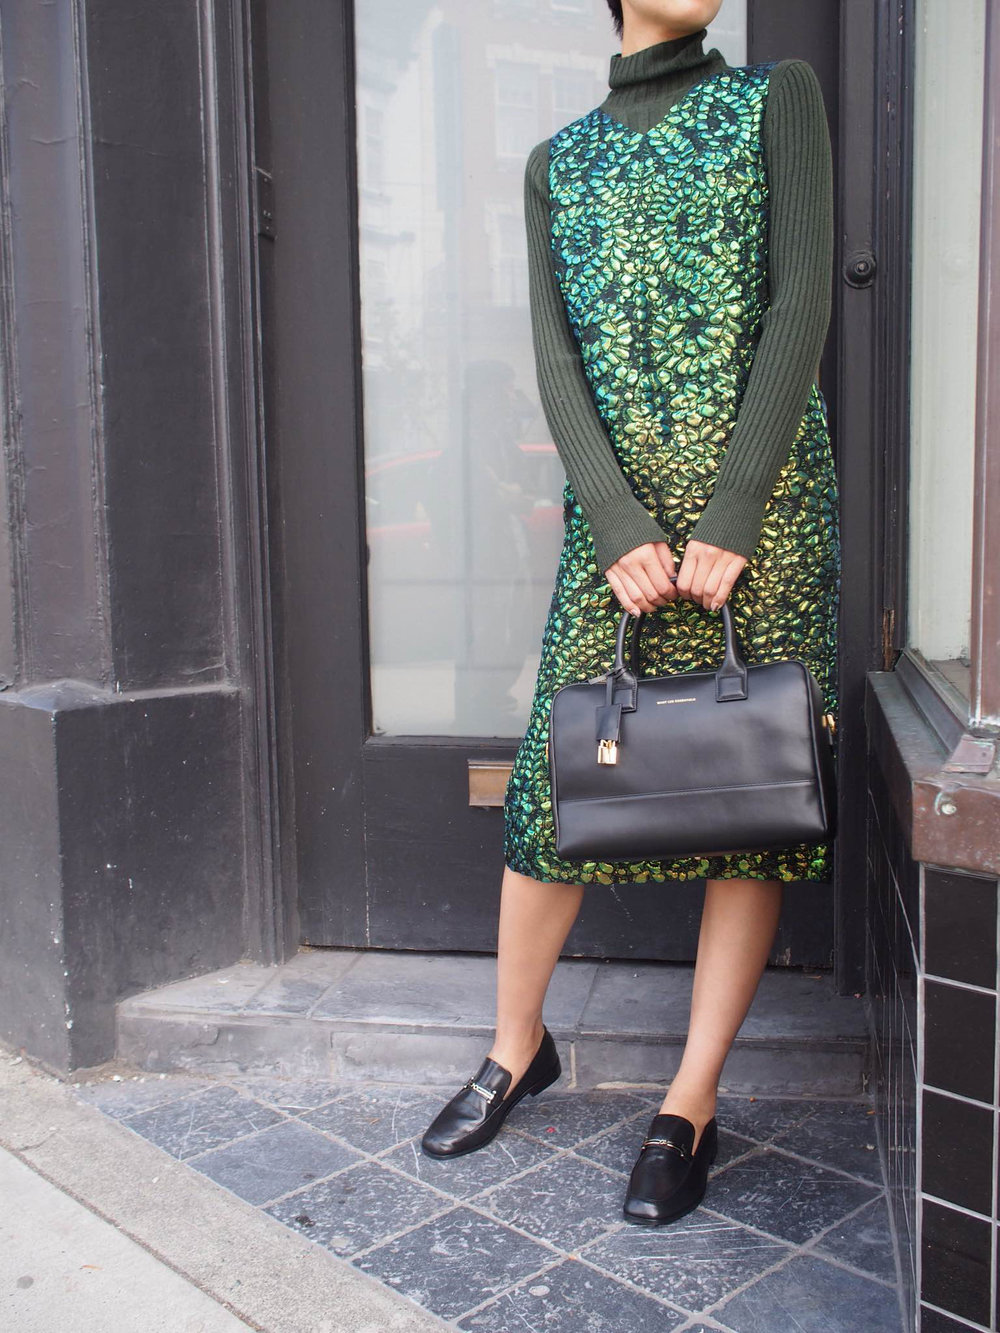 Maison Margiela dress and turtle-neck with Want Les Essentiels bag and NewbarK loafers.